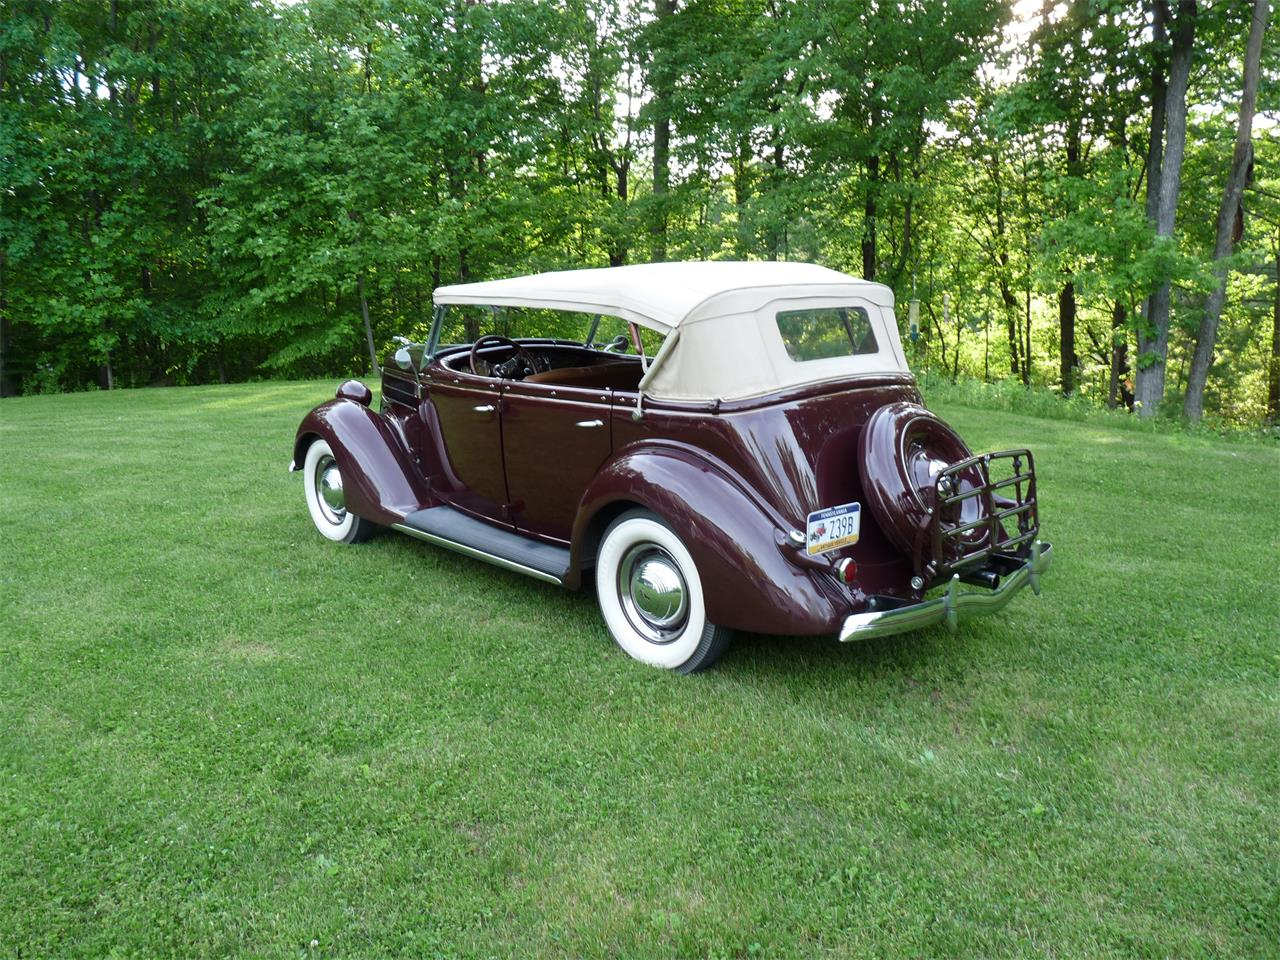 Large Picture of Classic 1936 Ford Phaeton located in Pennsylvania - $40,900.00 - BWBS